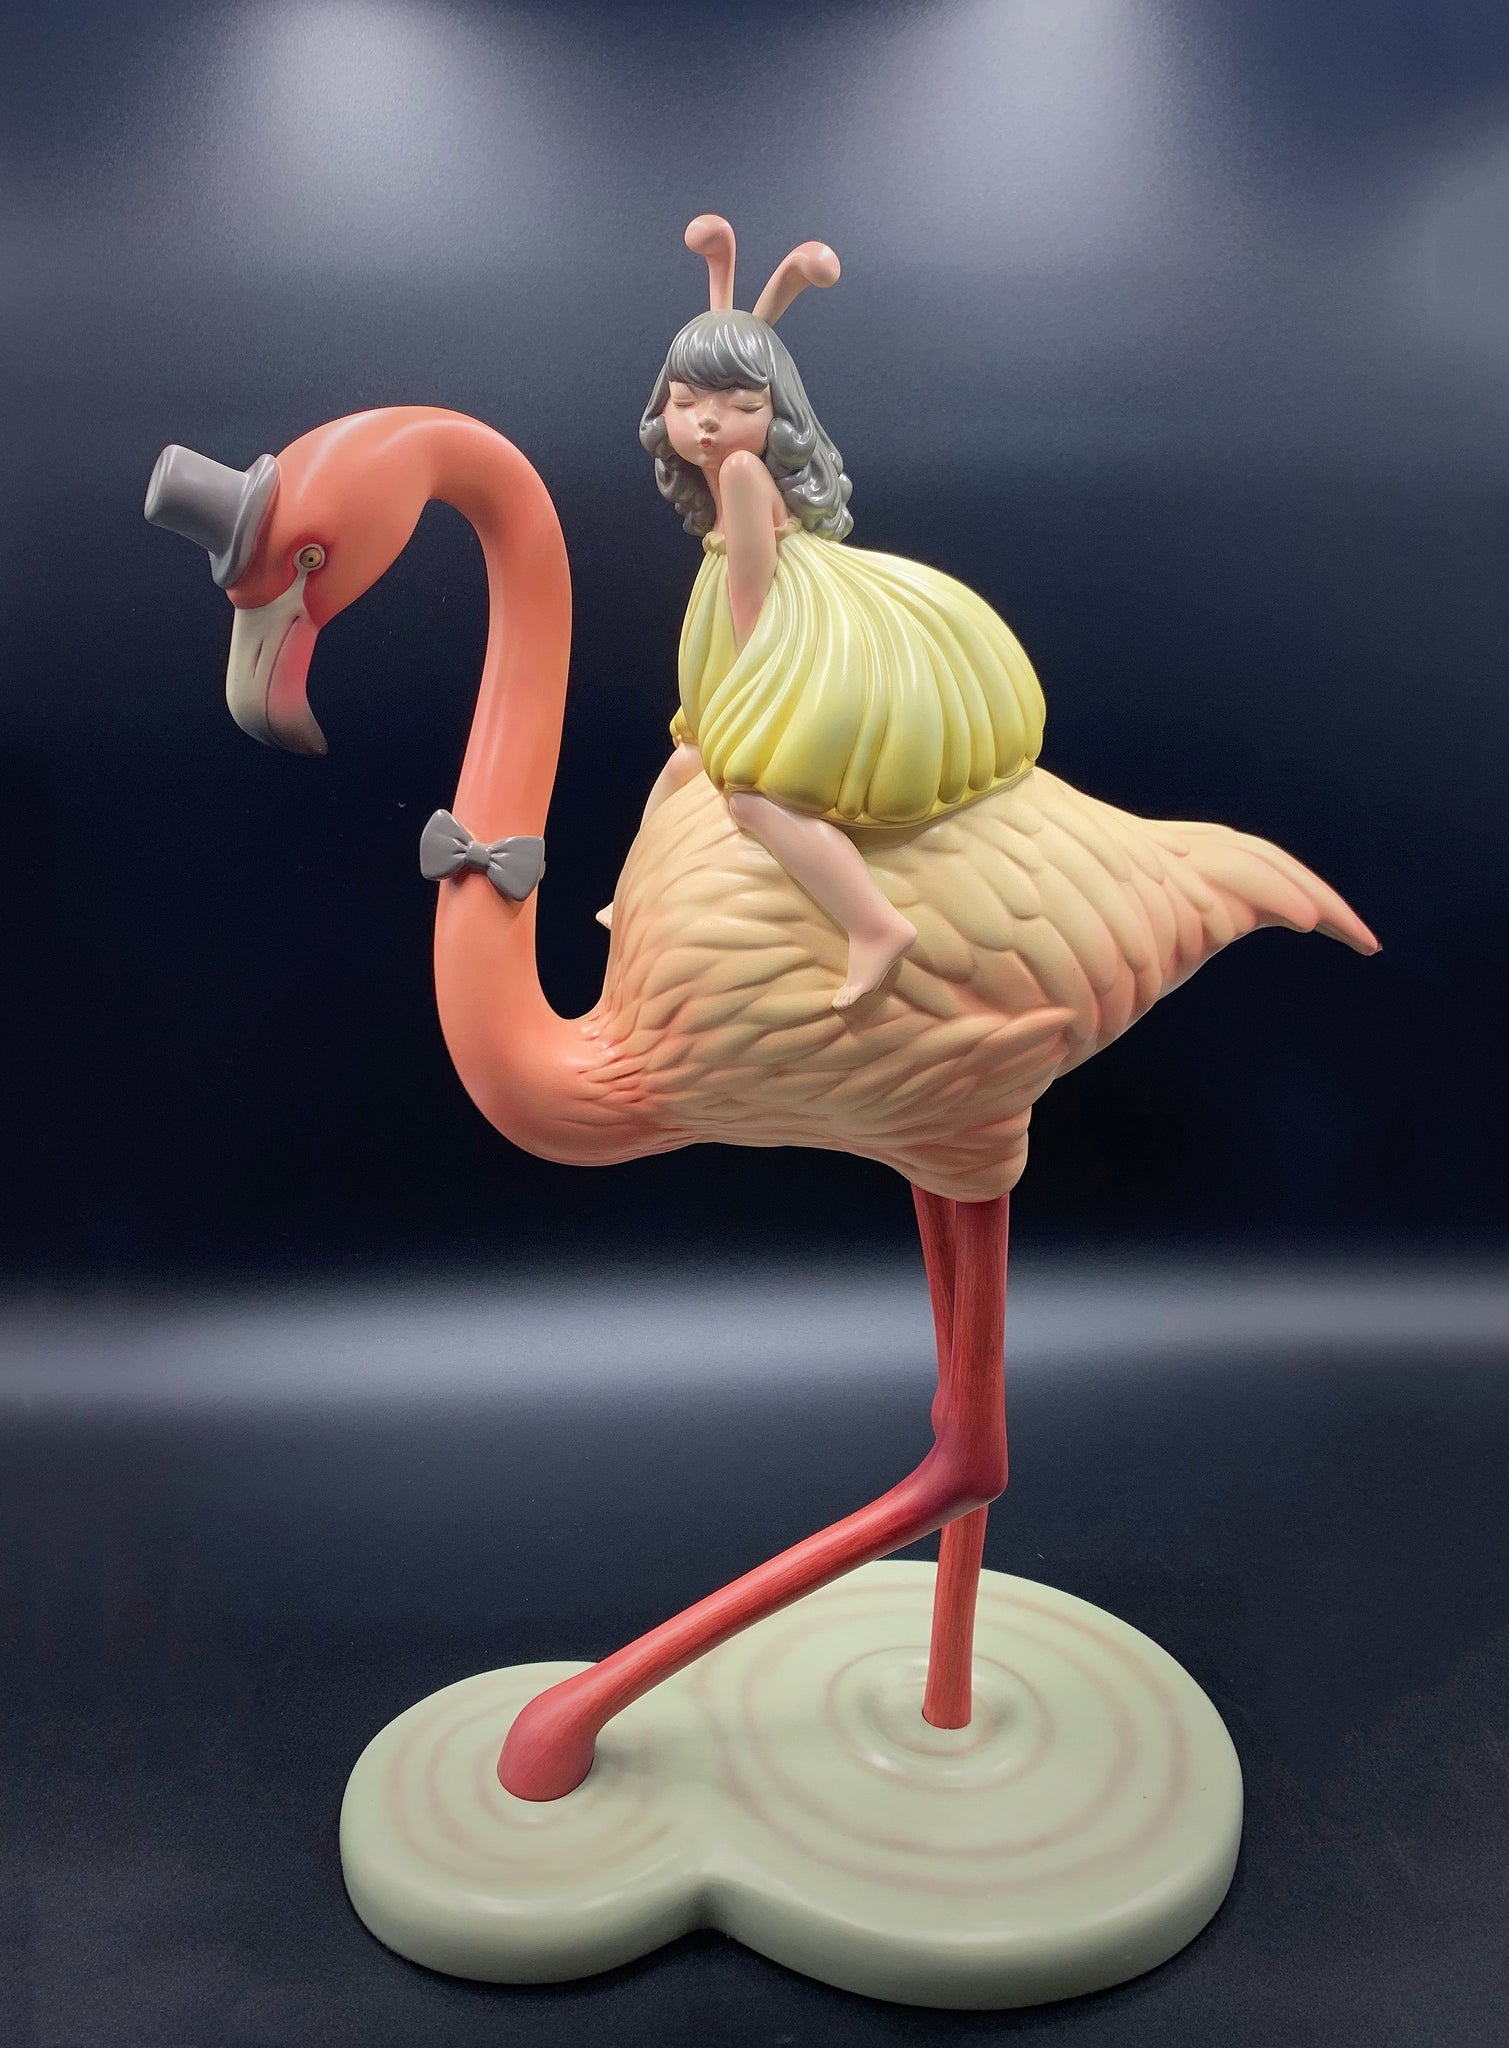 Dream of Fairytales - Flamingo by Jia Xiaoou